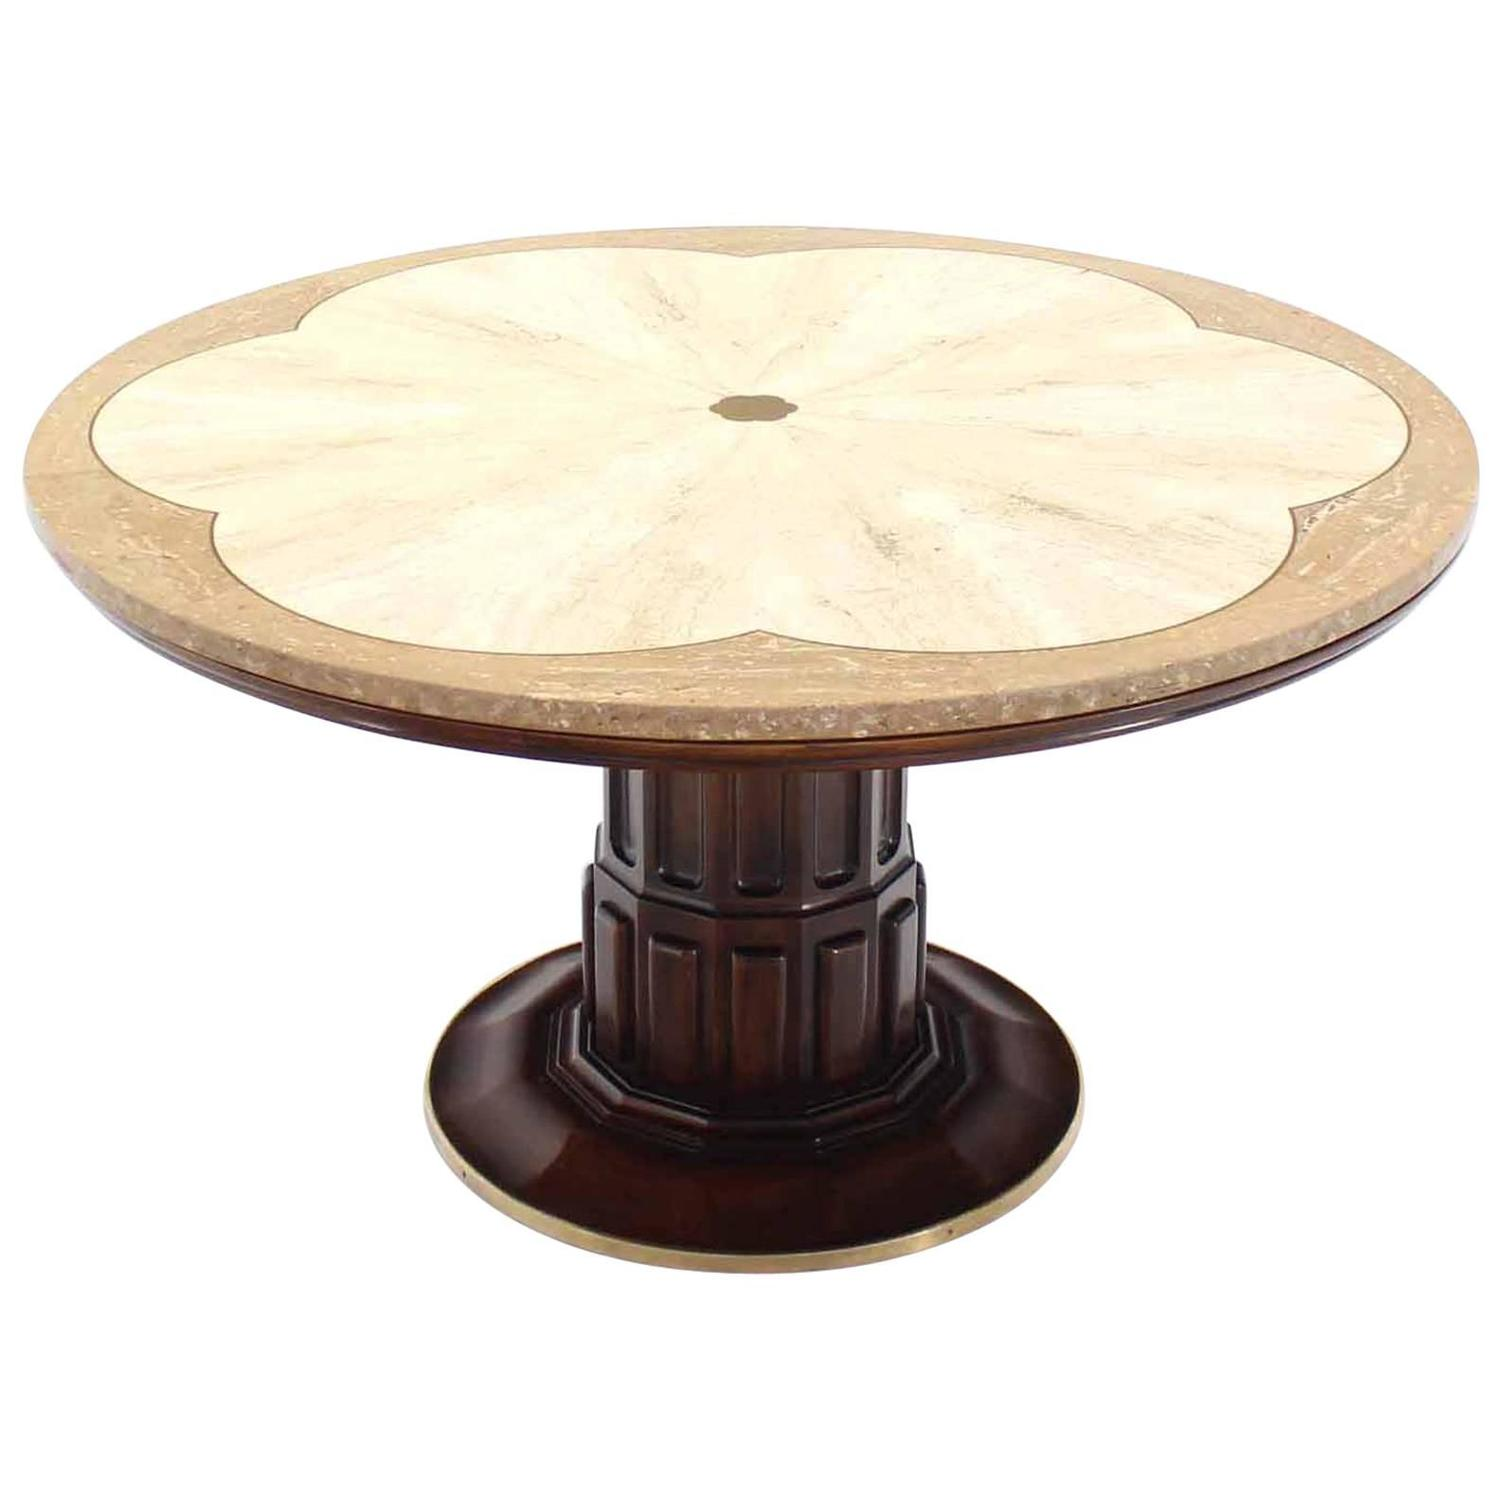 side metal awesome for and pedestal round decorative large sale lamp stand octagon modern table coffee trunk marble phone tables glass wood inch corner designs rustic